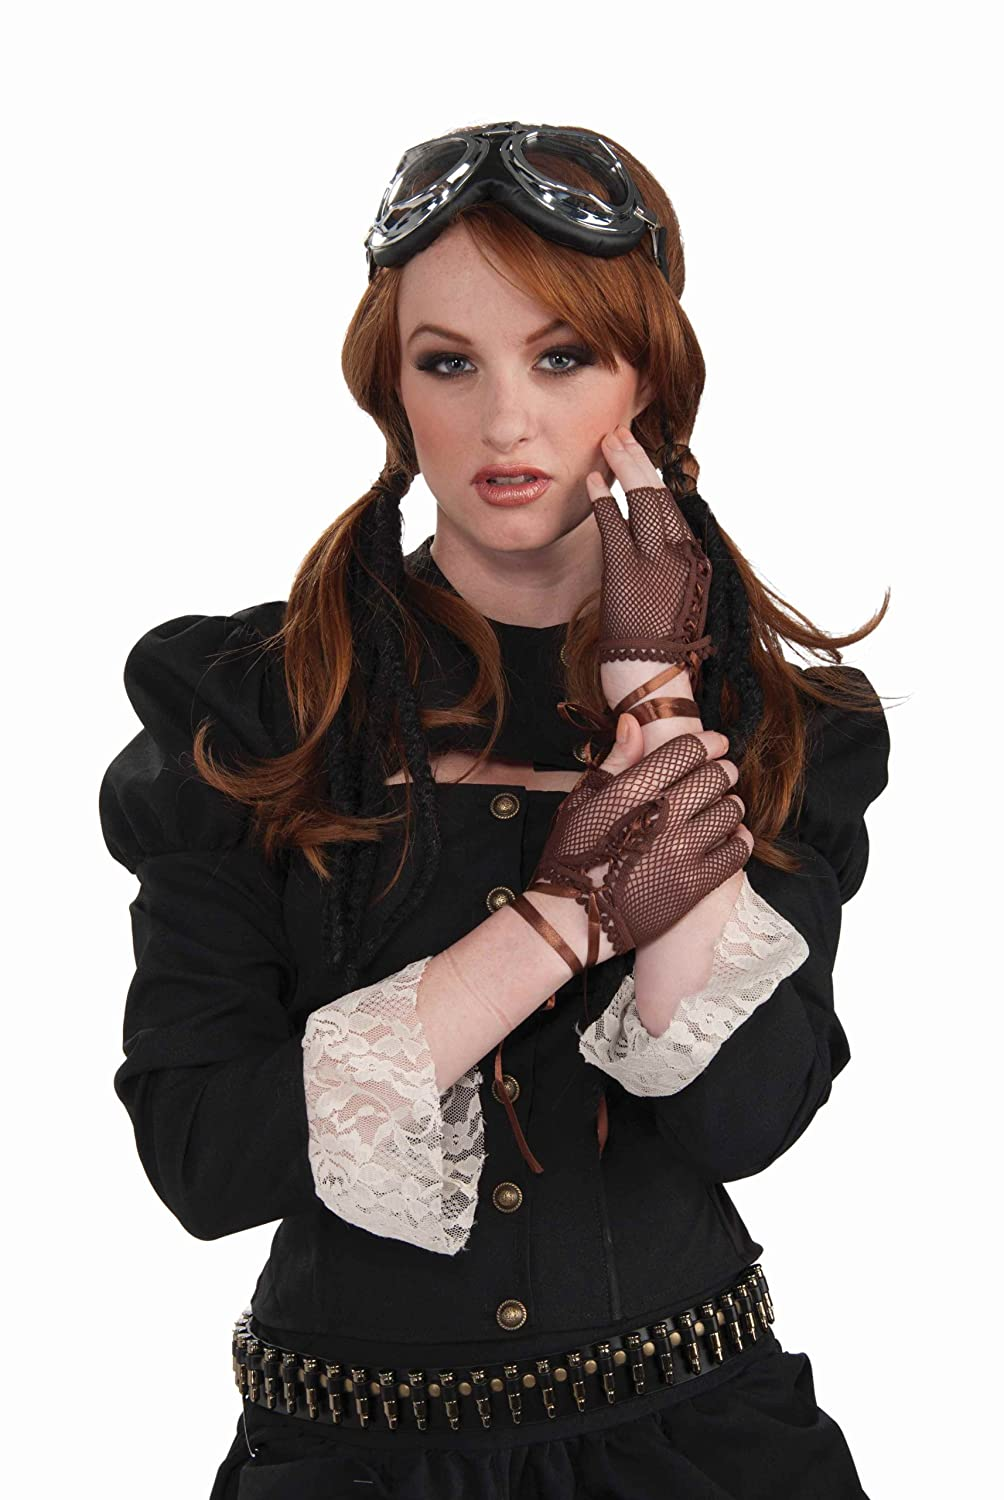 Vintage Style Gloves  Steampunk Fingerless Gloves Costume Accessory $5.89 AT vintagedancer.com